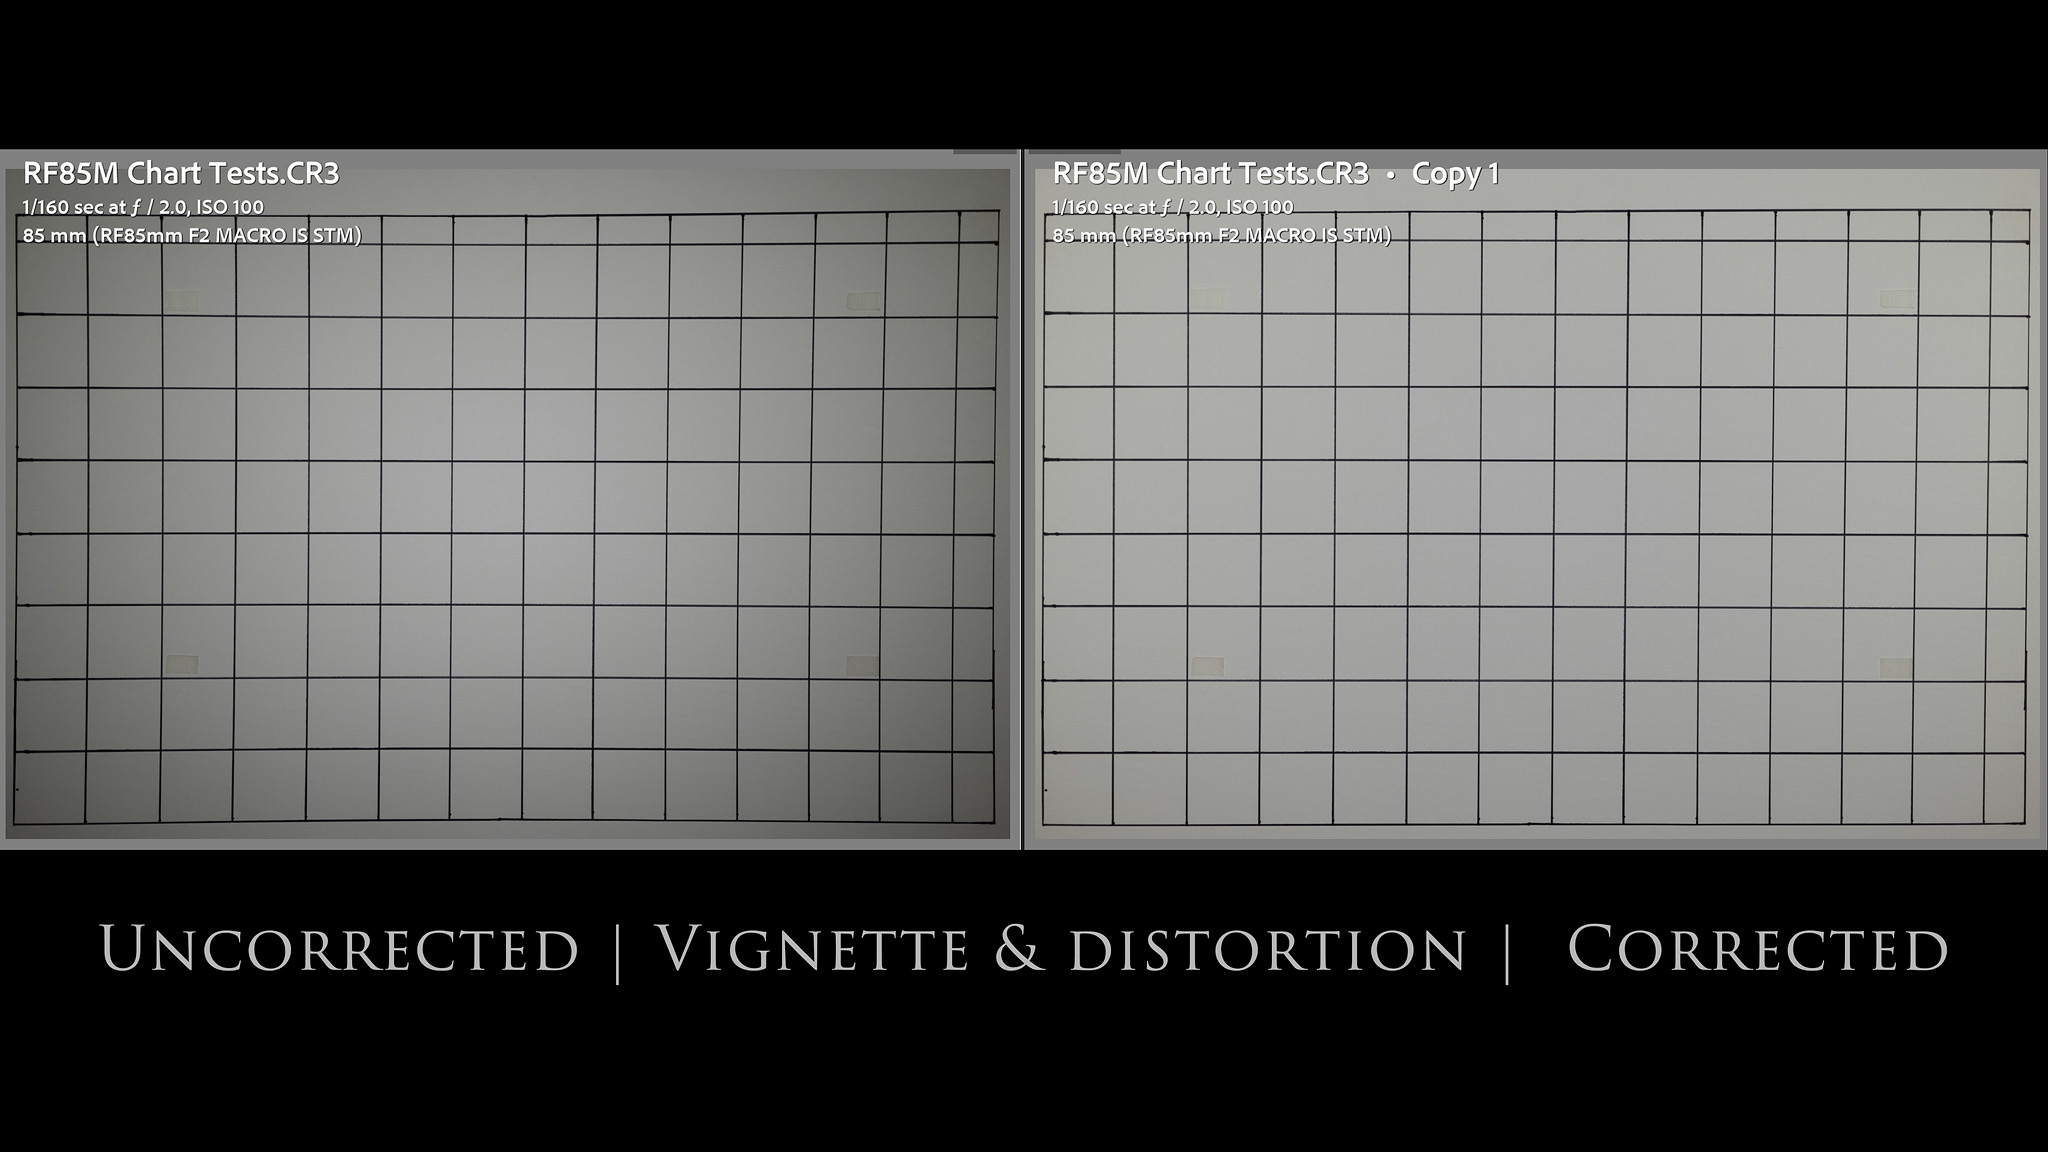 22-Vignette-and-Distortion